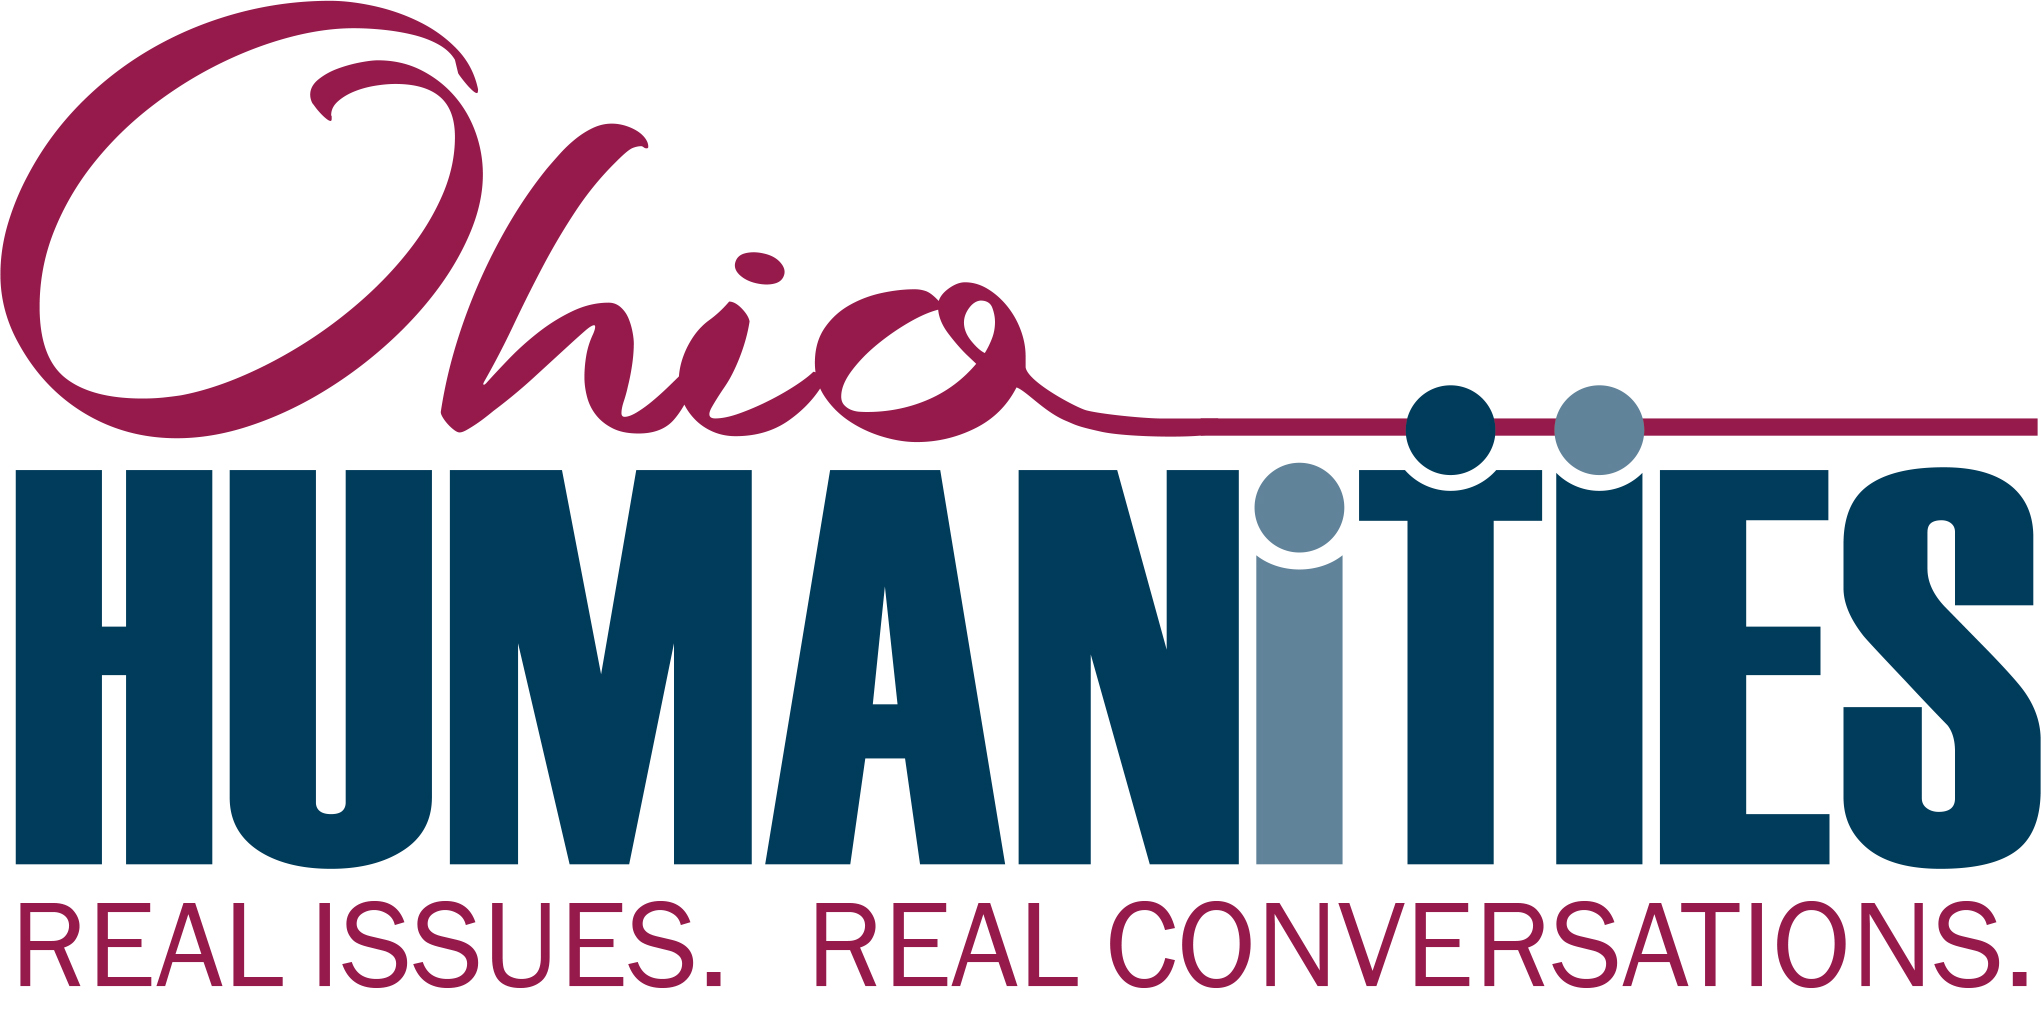 Ohio Humanities Council